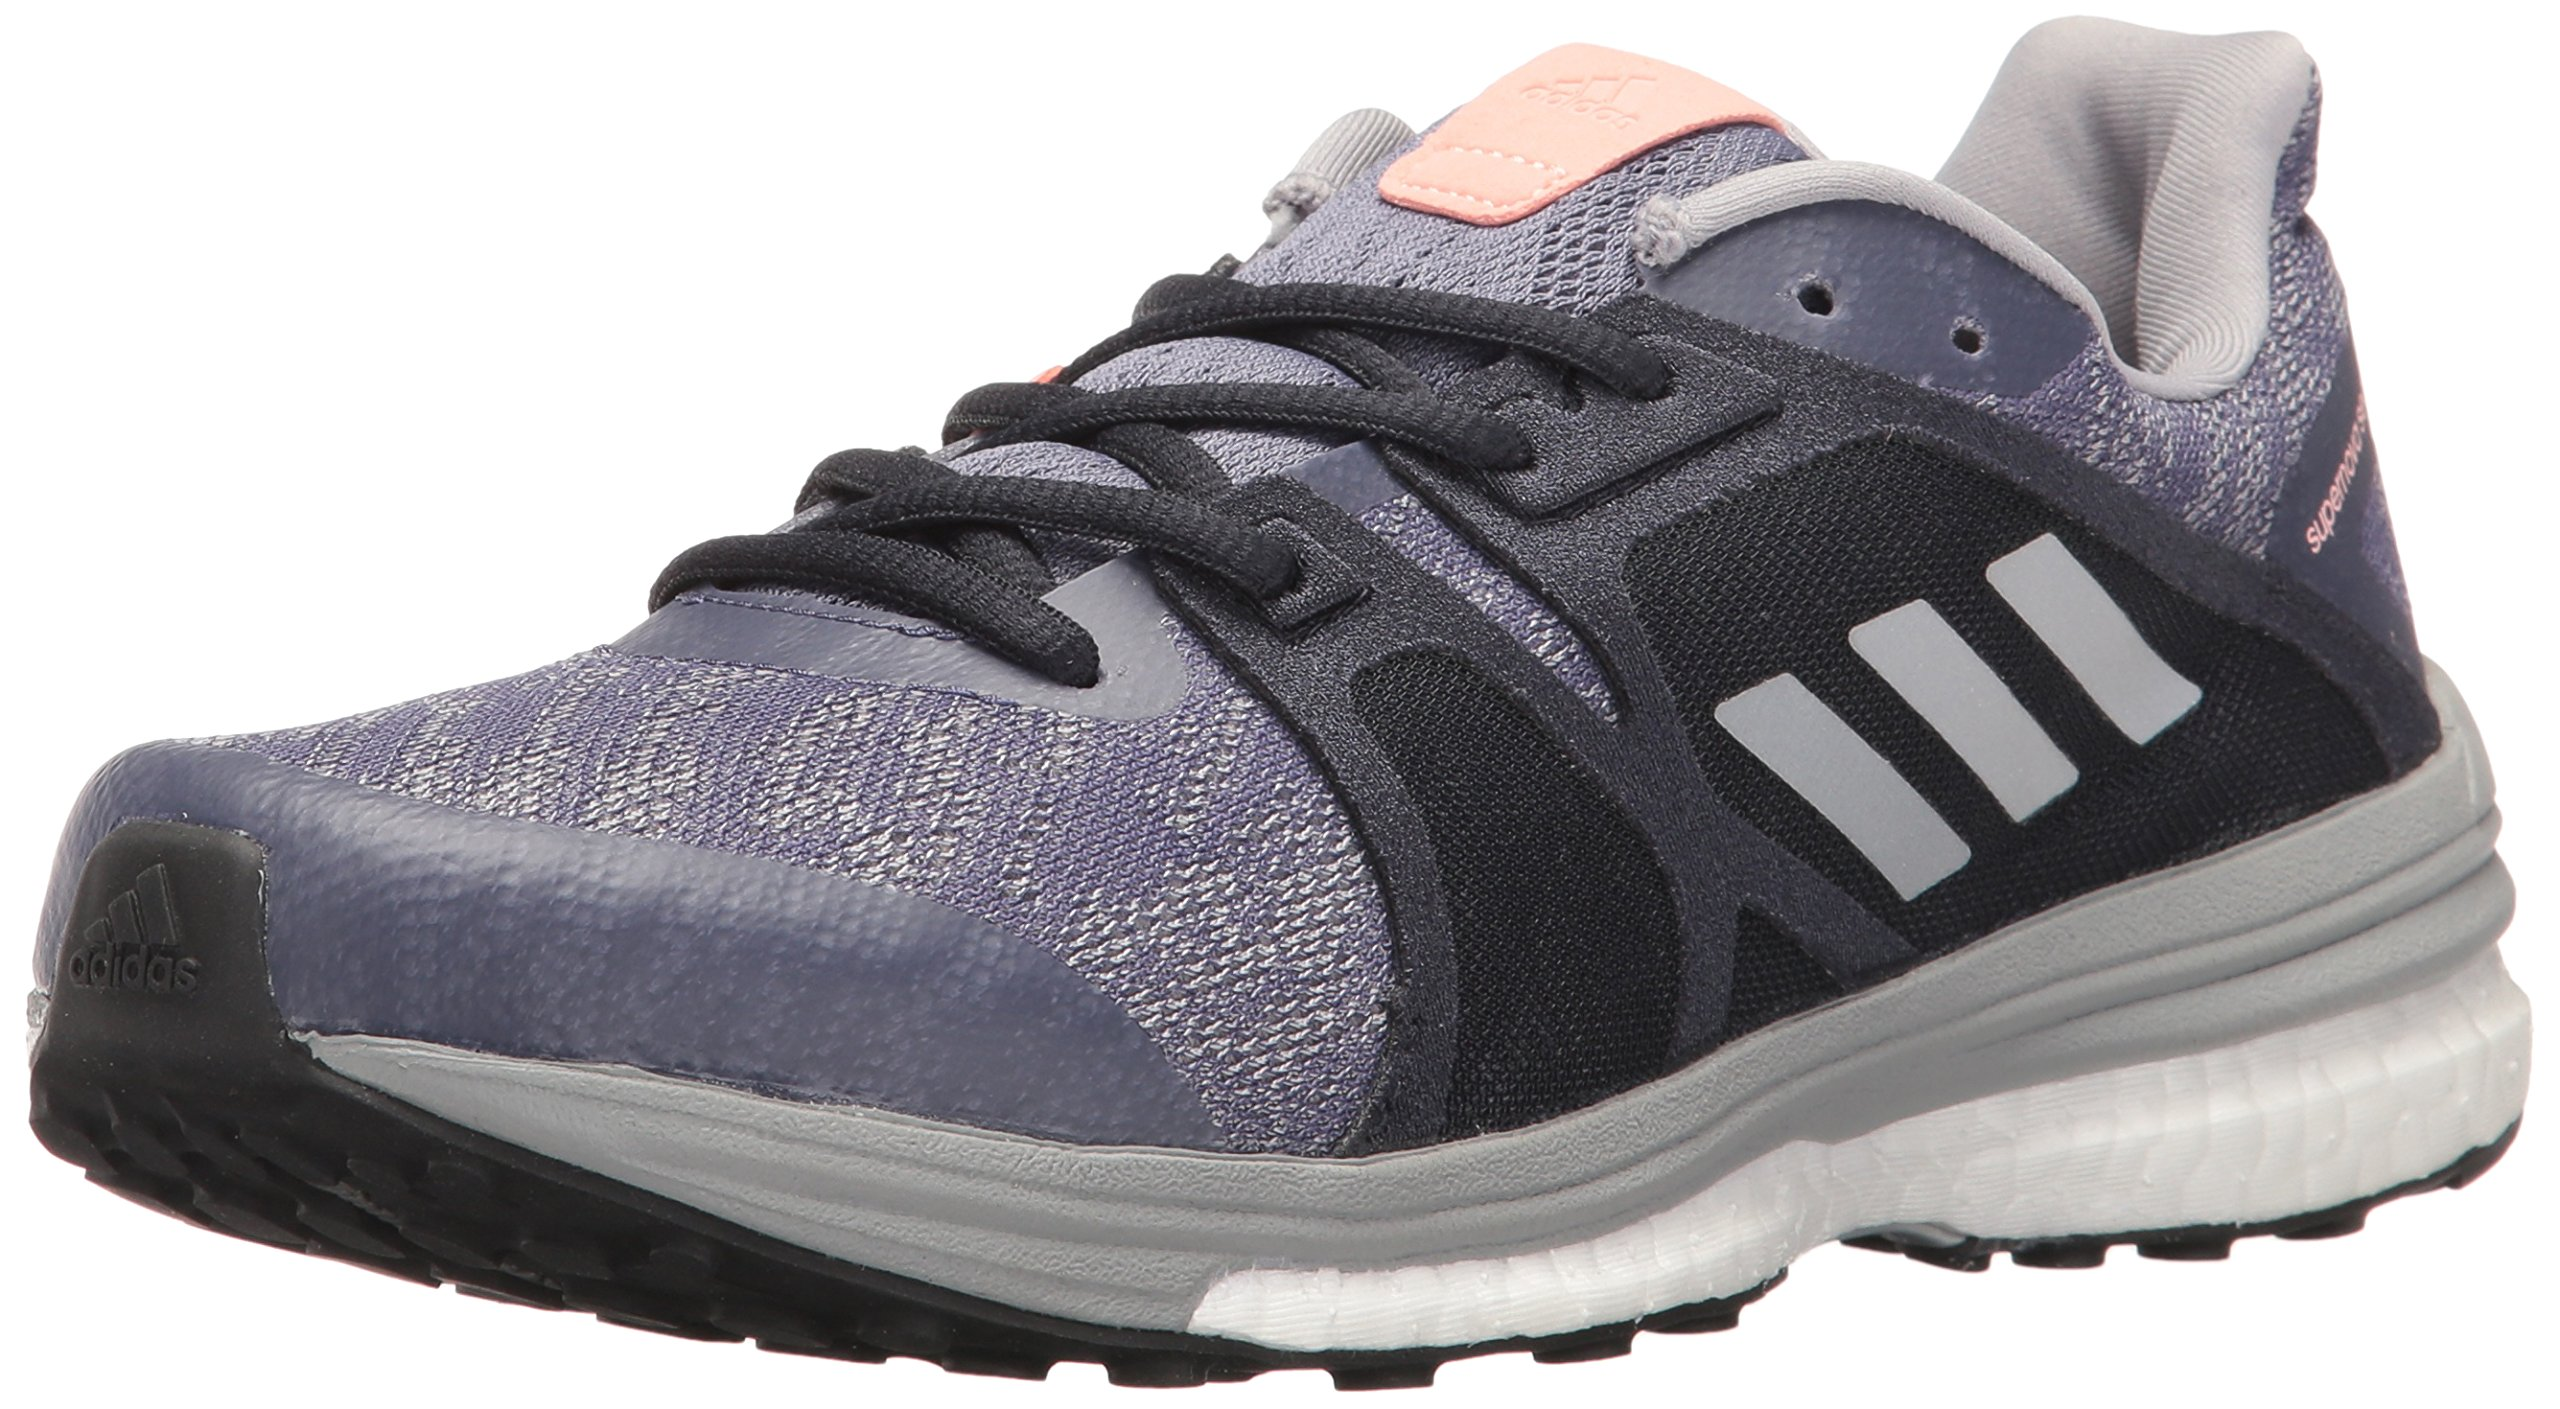 687c8956507 Galleon - Adidas Performance Women s Supernova Sequence 9 W Running Shoe